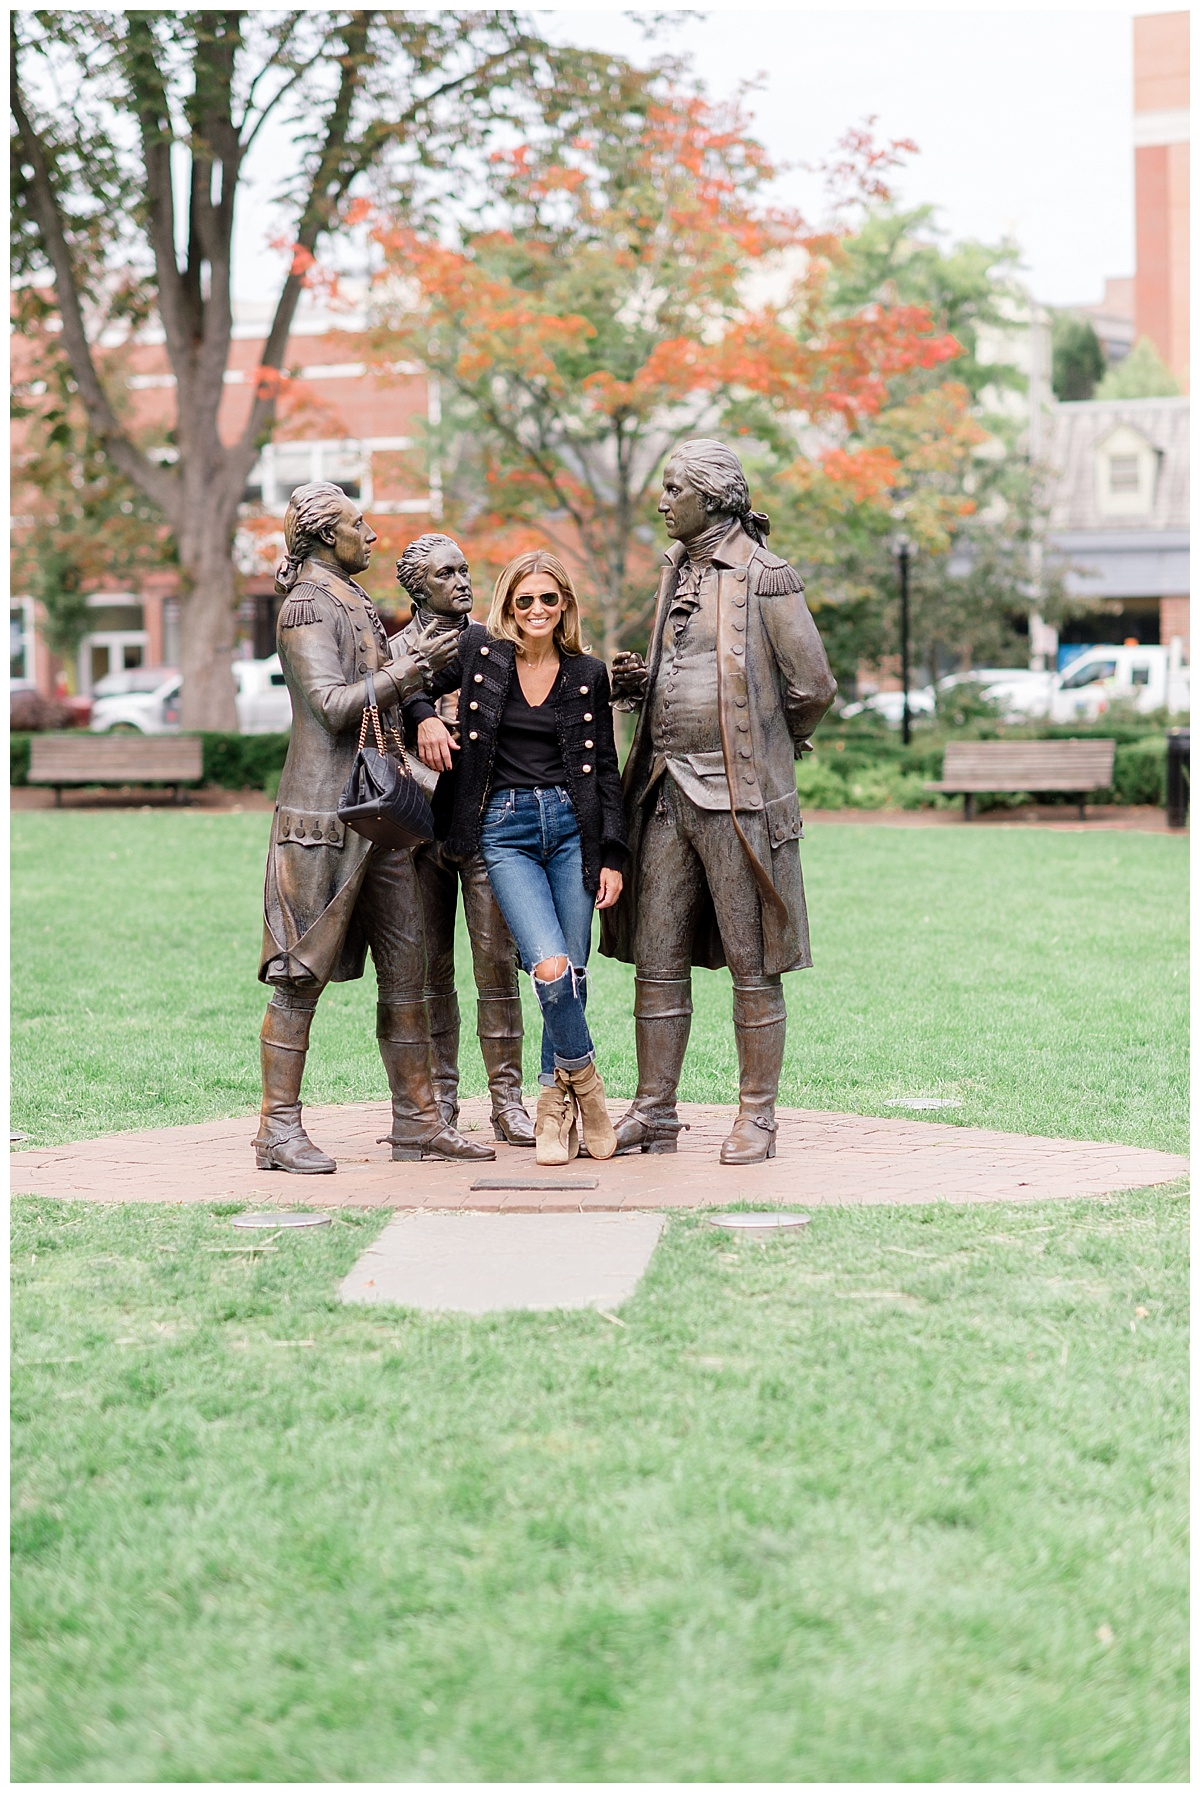 So,  this jacket  from Zara makes me feel like a cross between Michael Jackson and George Washington! The detail is amazing and it is only $150. I thought it was a appropriate to take my pic with these guys - George Washington, Marquis de Lafayette, and Alexander Hamilton on the green in Morristown. They didn't even mind holding my handbag!To keep this look casual, I grabbed a  light weight knit  from Zara to go under the jacket, my favorite  Citizens of Humanity jeans  and the  MUST-HAVE booties  for Fall.